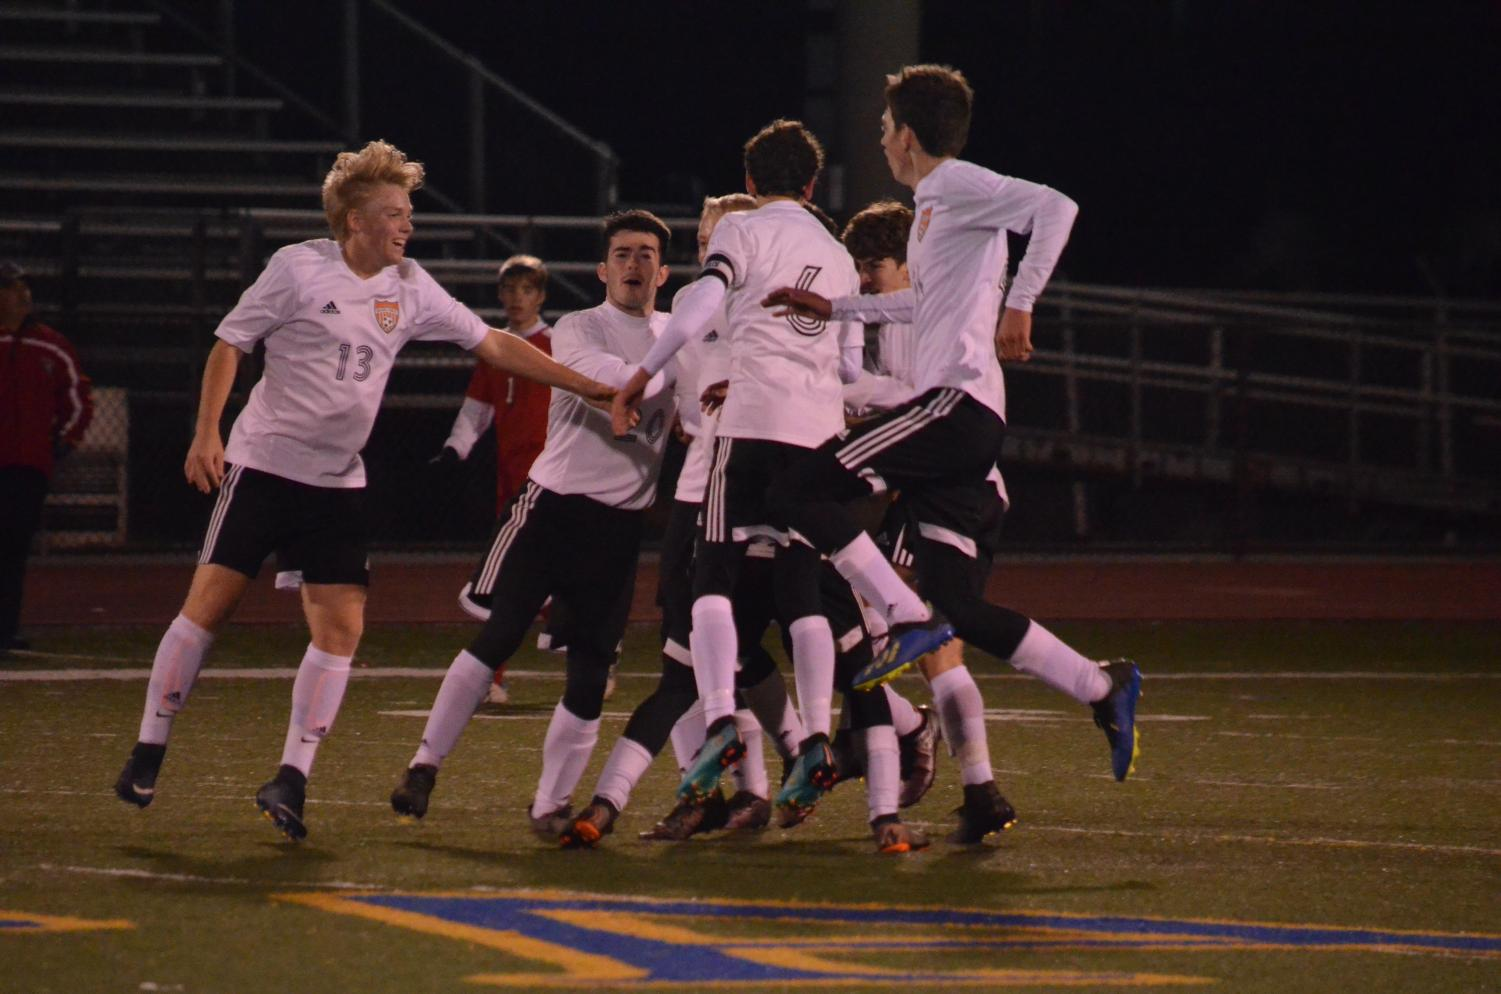 The team celebrates their playoff win vs. Hollidaysburg